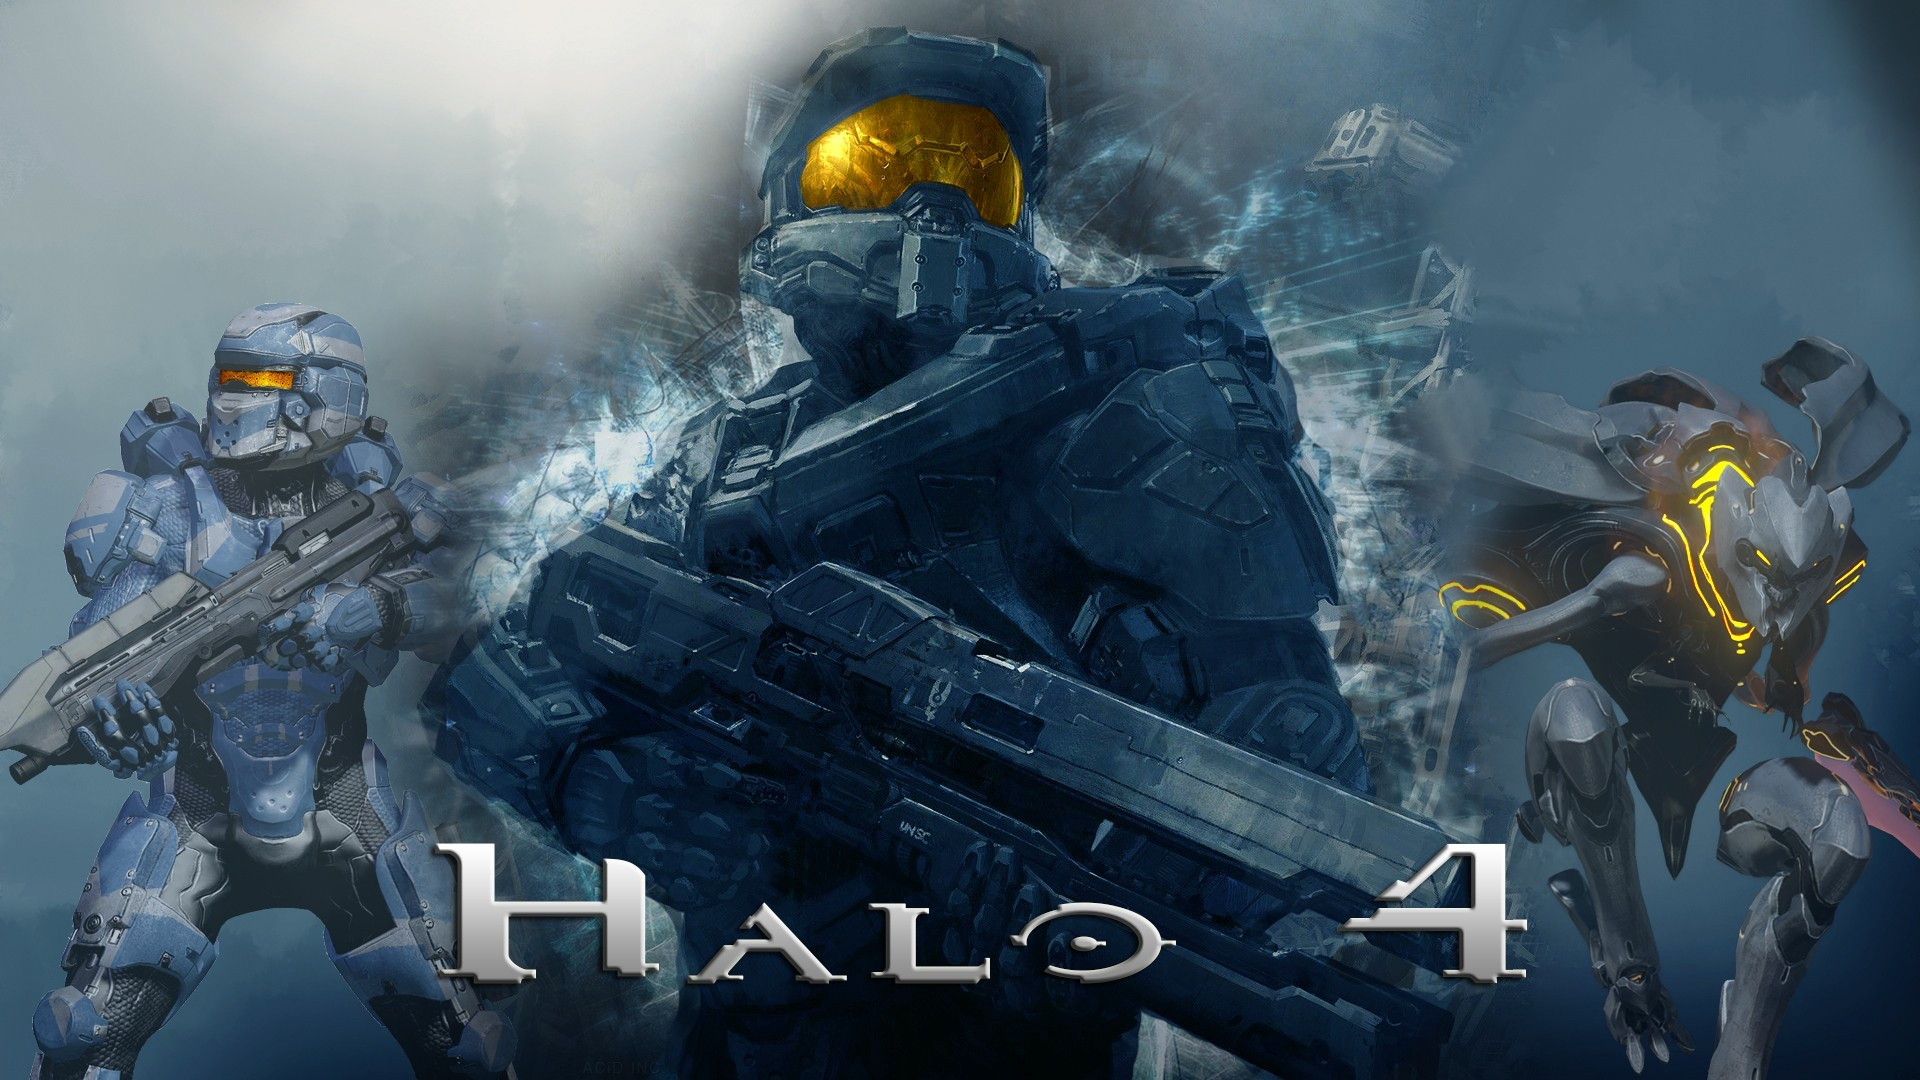 Halo 4 Wallpapers 1920x1080 80 Background Pictures